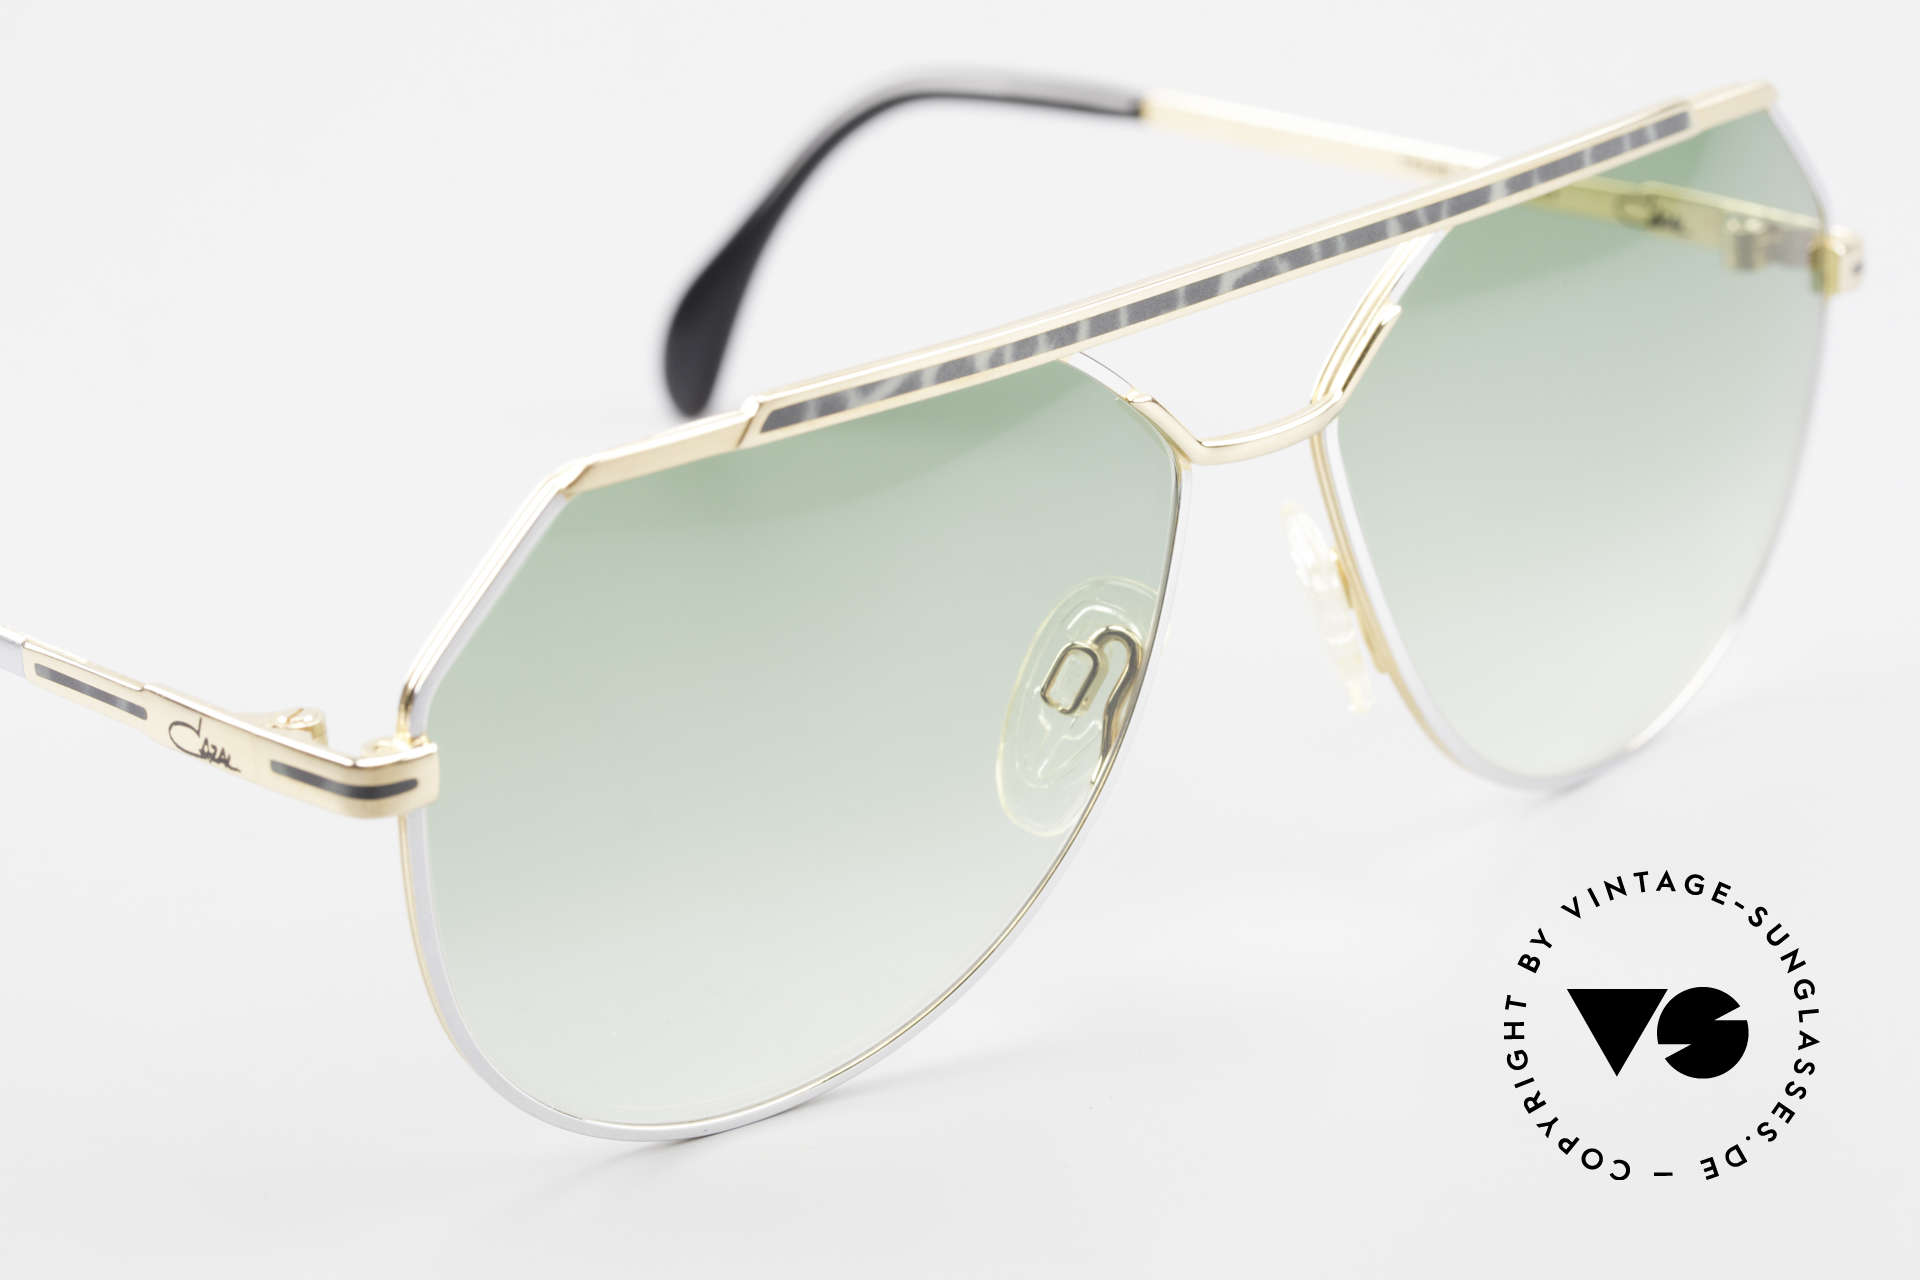 Cazal 733 Gold Plated 80's Sunglasses, NO RETRO shades, but an old 'W.Germany' original, Made for Men